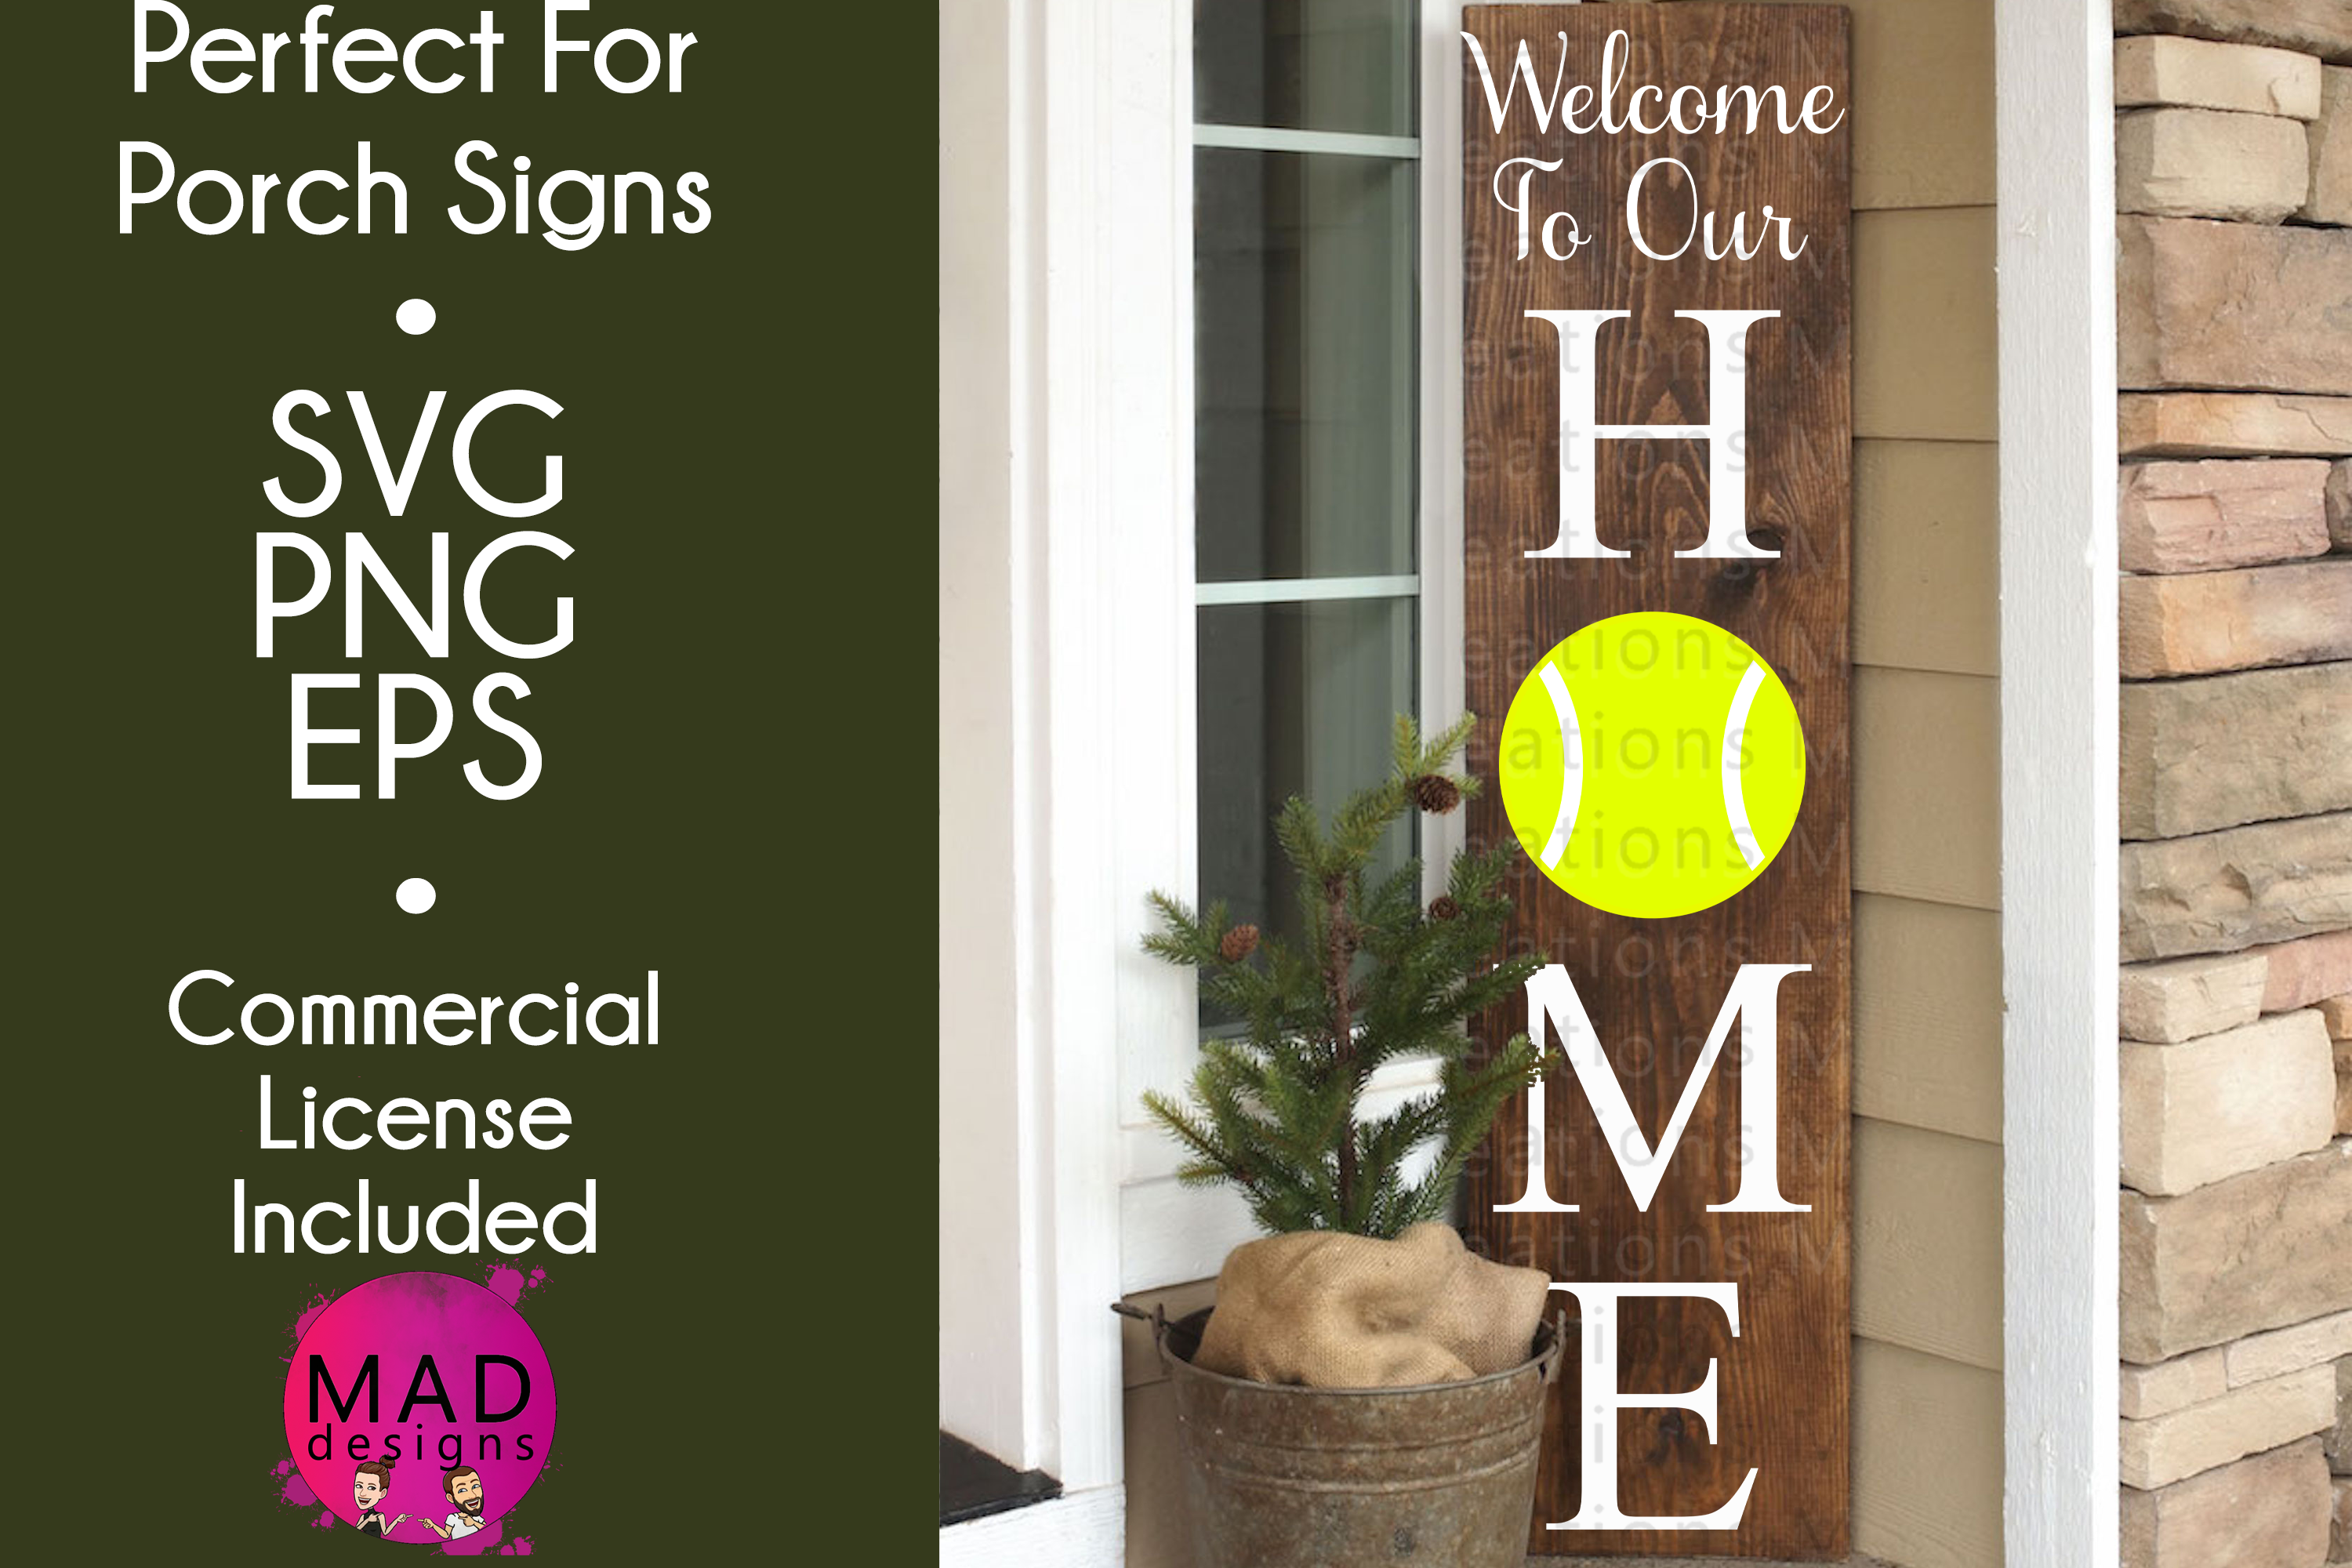 Welcome to Our Home - Tennis example image 1